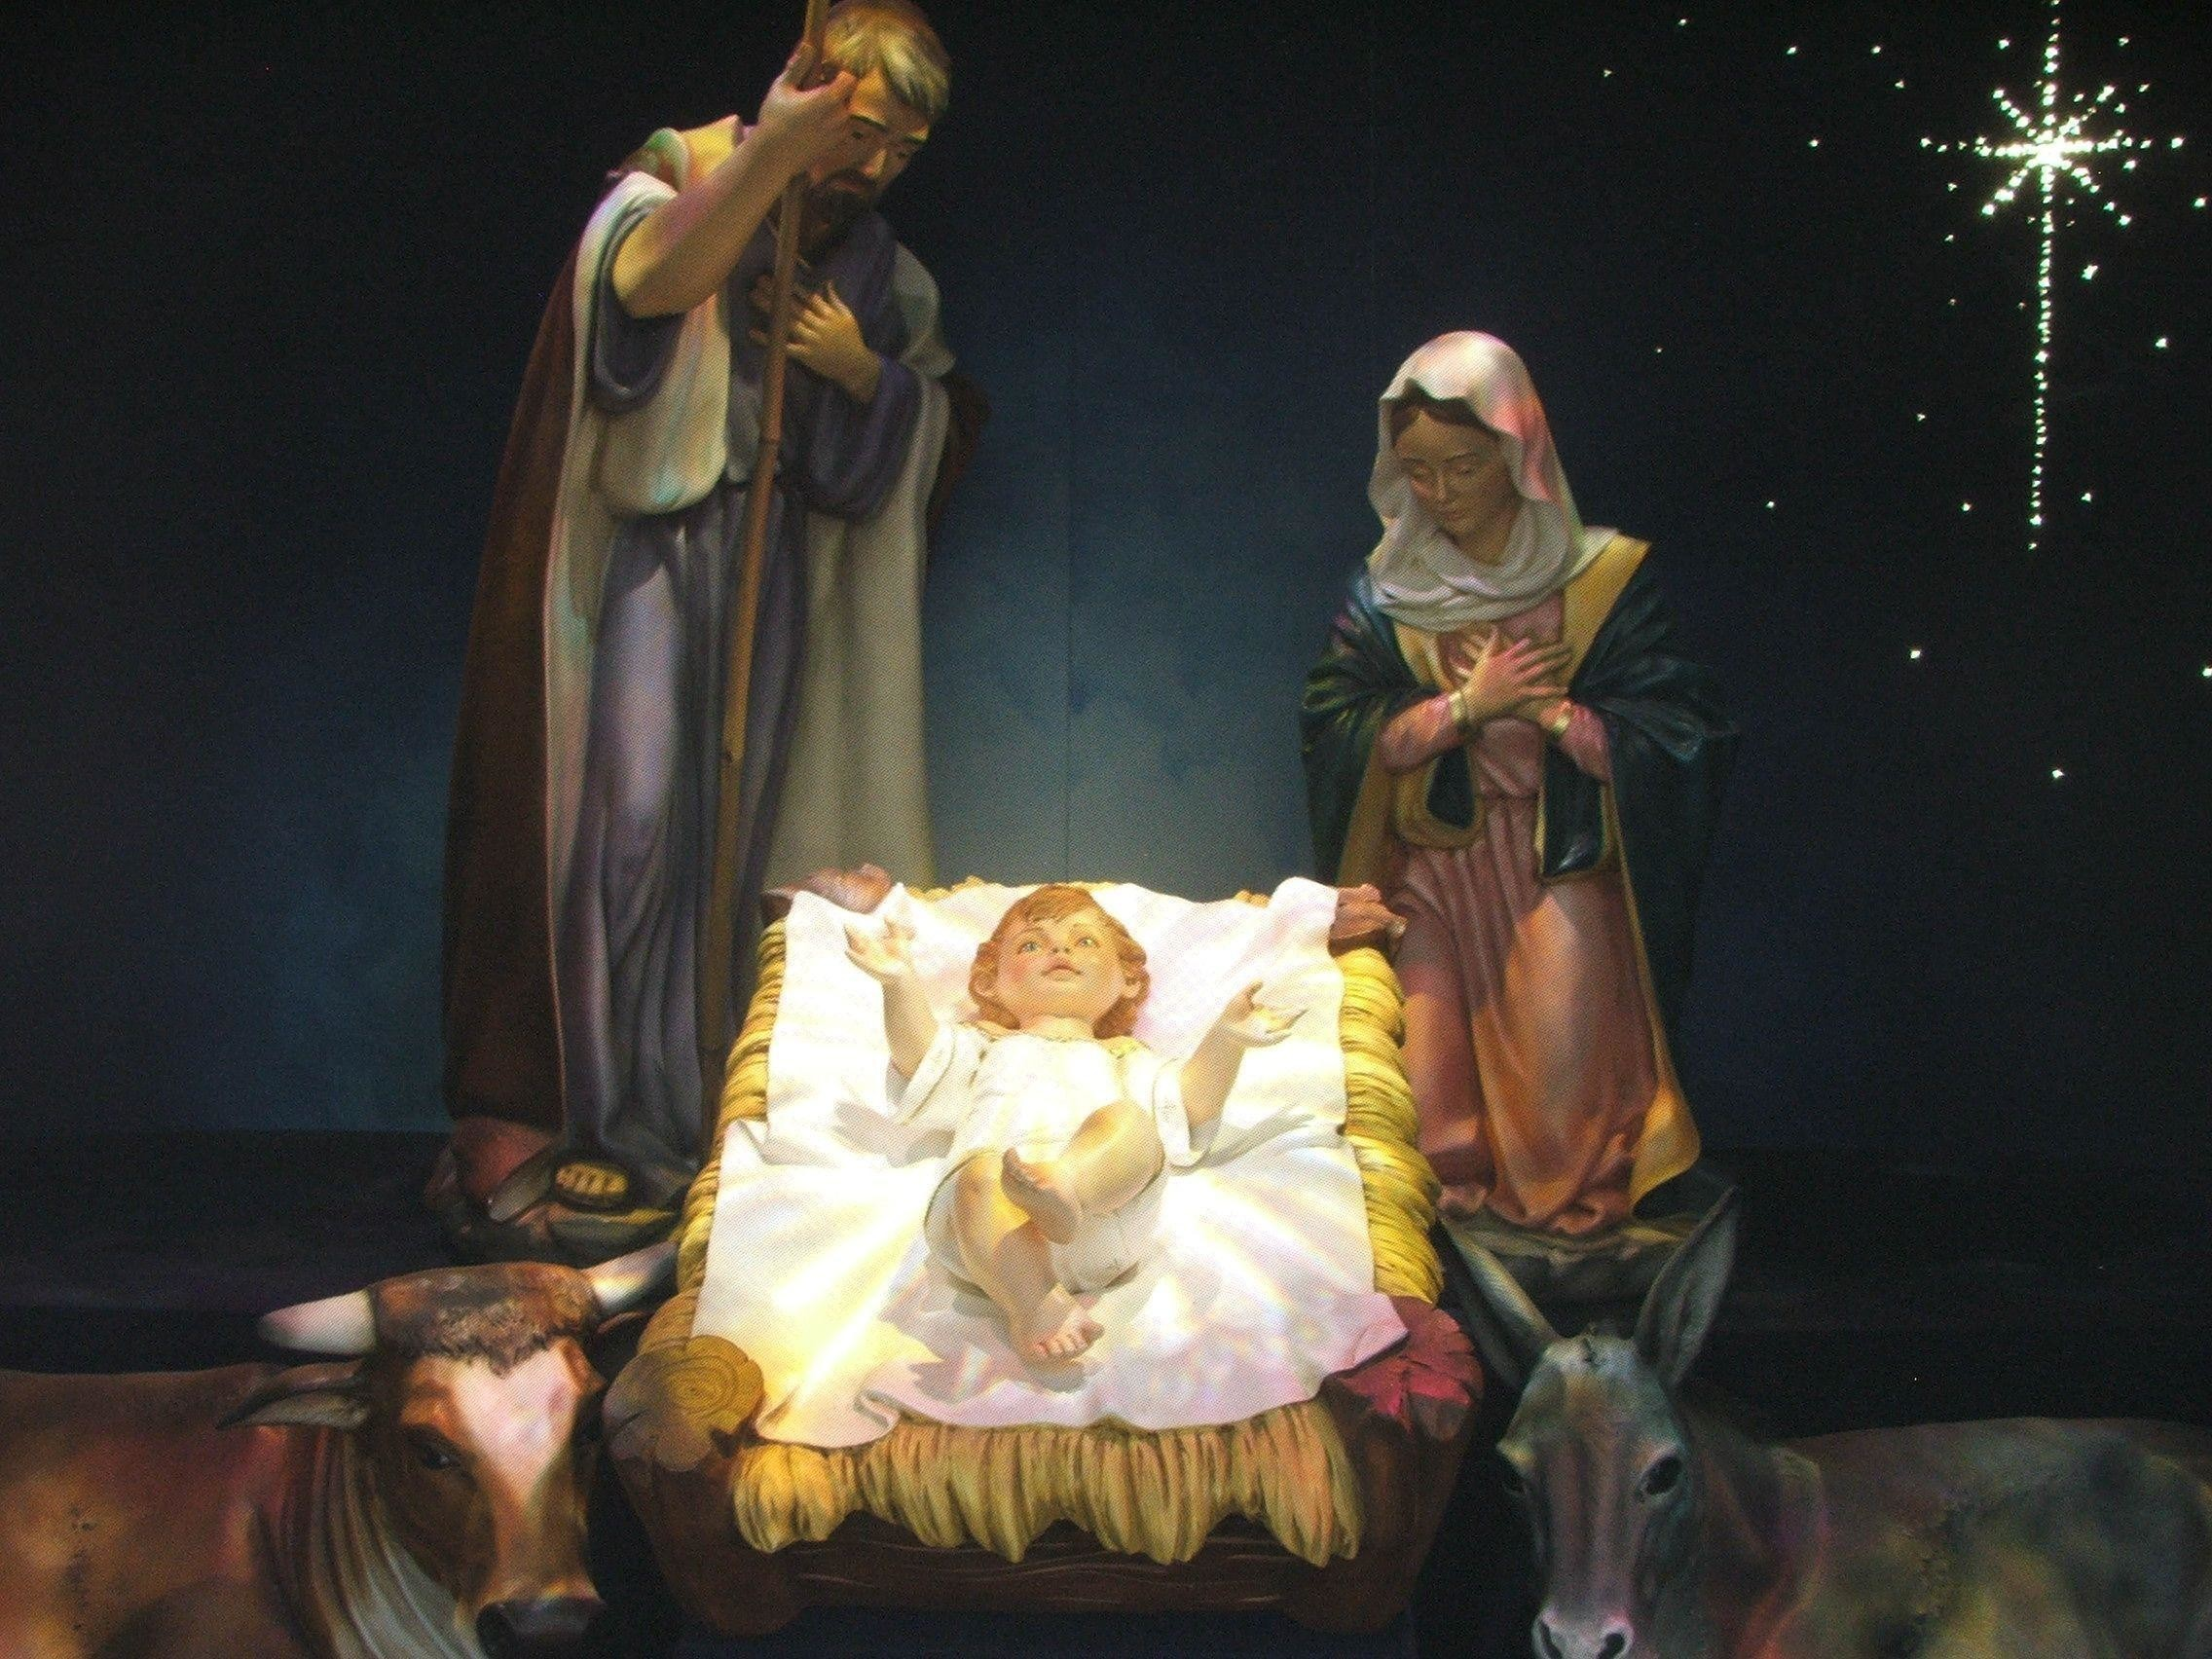 2272x1704 Wallpapers For > Baby Jesus Wallpaper Desktop